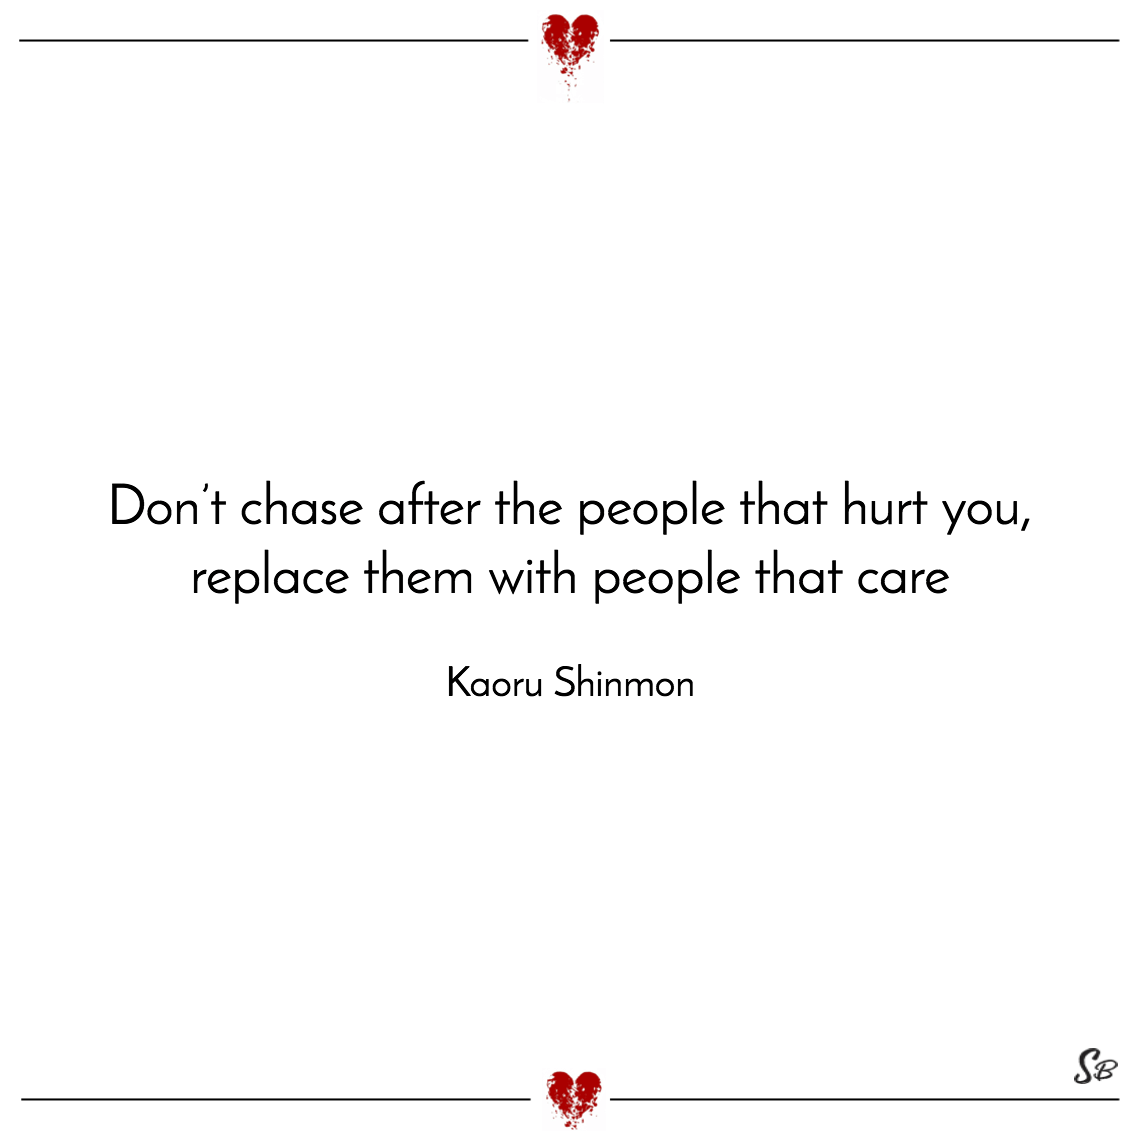 Don't chase after the people that hurt you, replace them with people that care kaoru shinmon